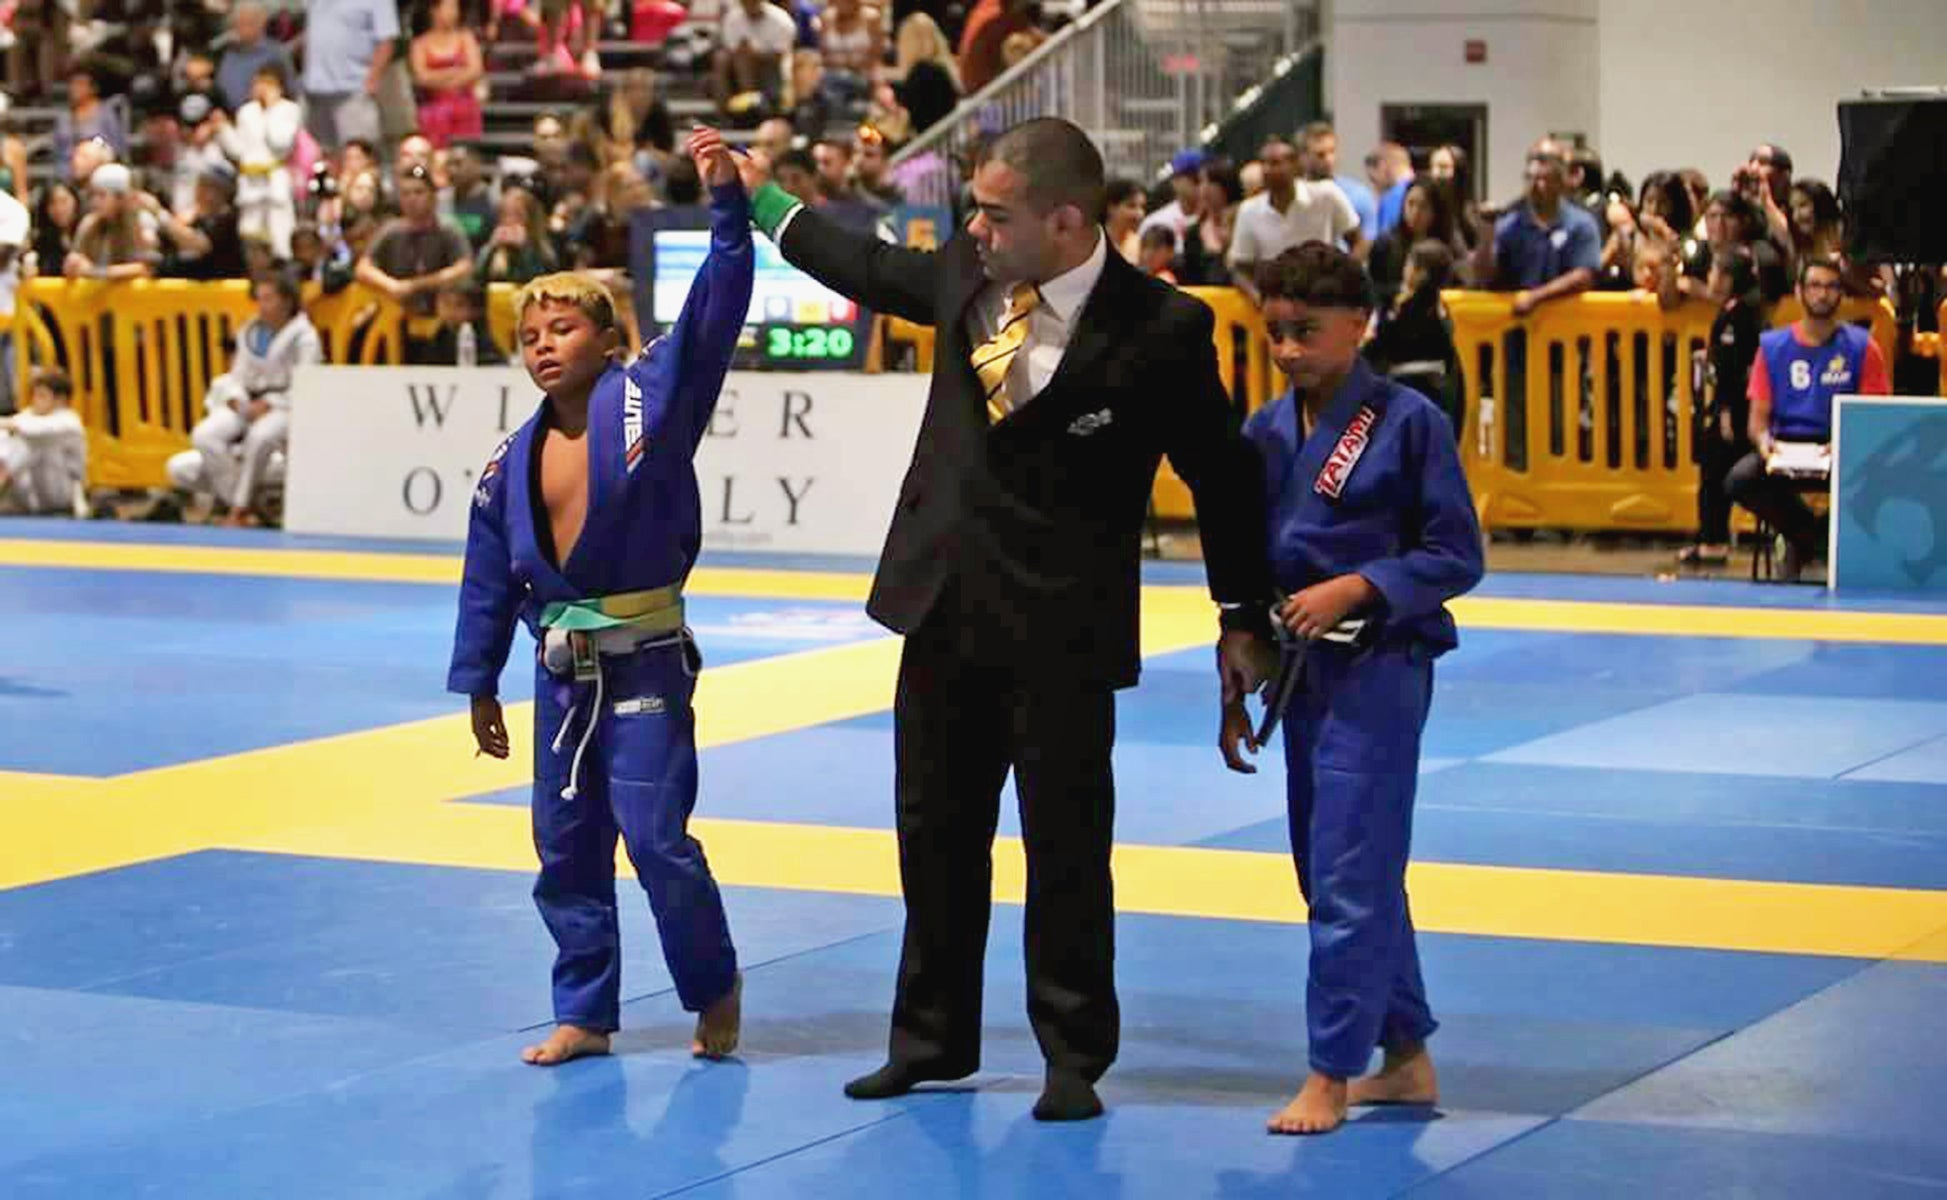 Elite Sports Team Elite Bjj Fighter Gabriel Garcia (Martelo)  Image21